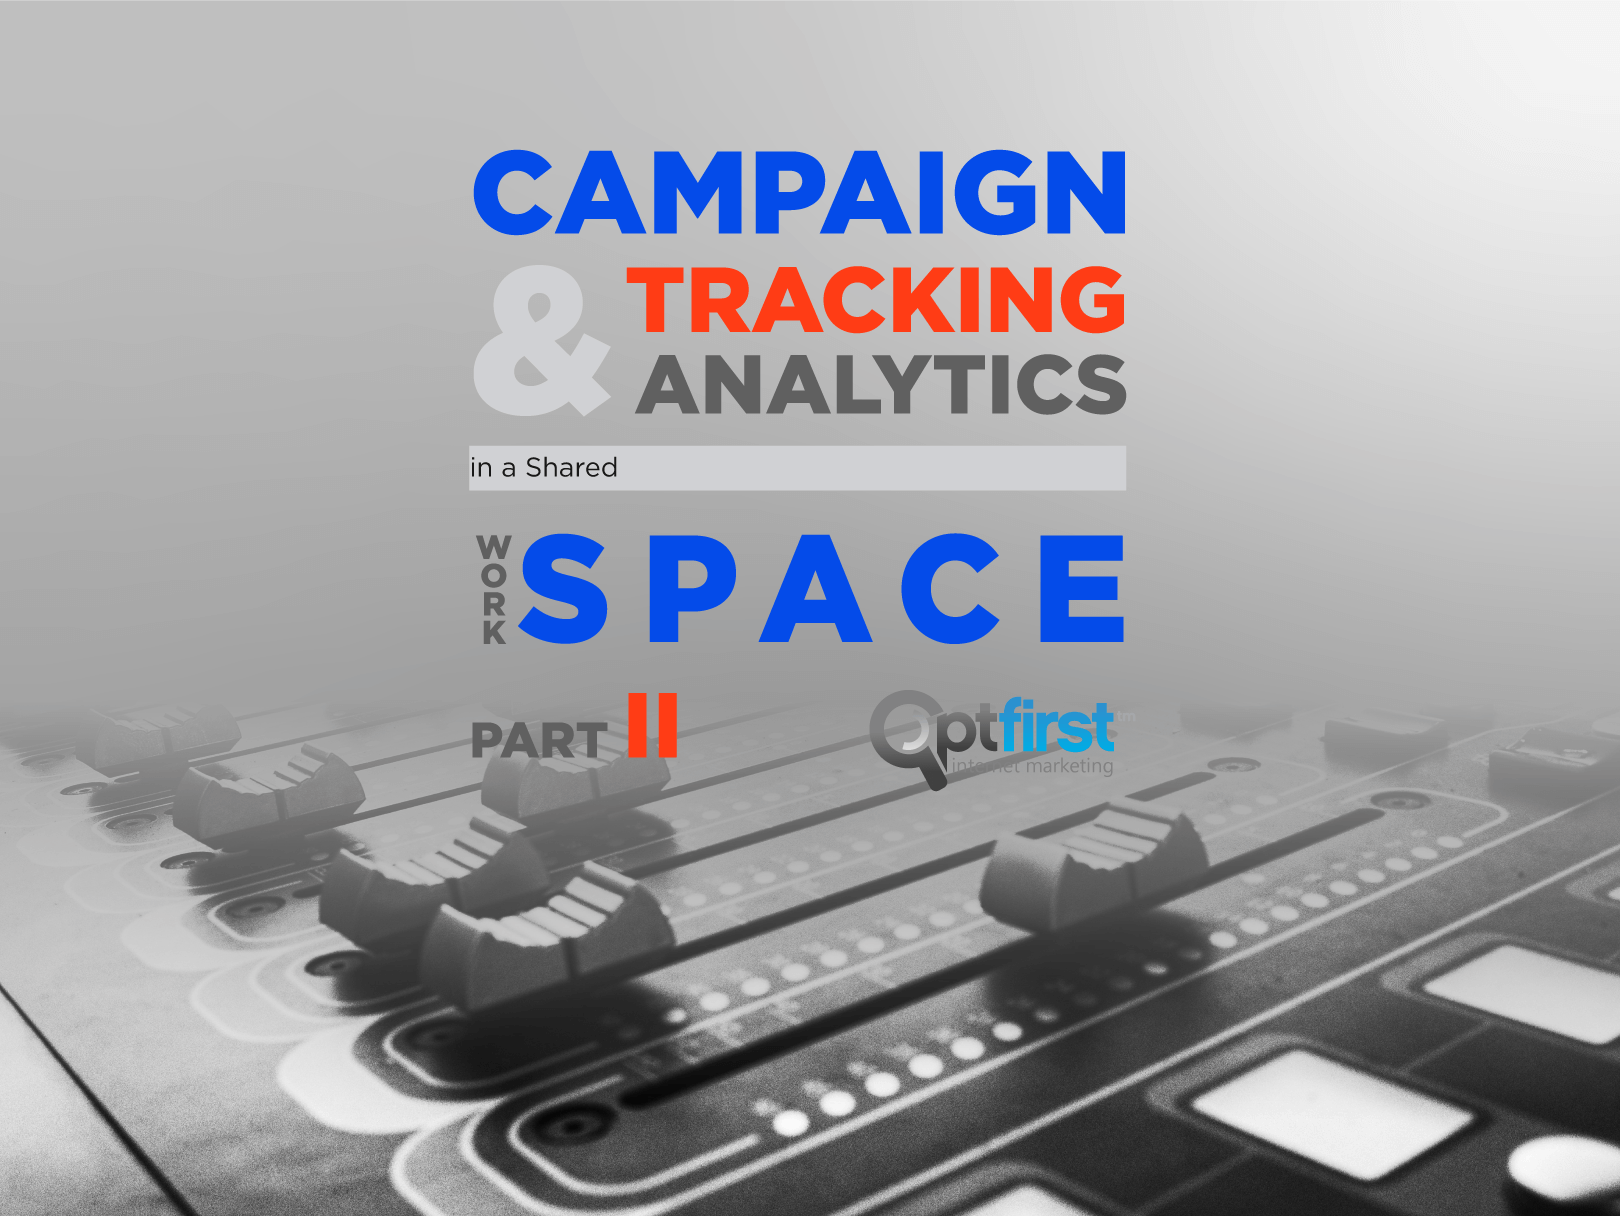 Campaign Tracking and Analytics in a Shared Workspace – Part II